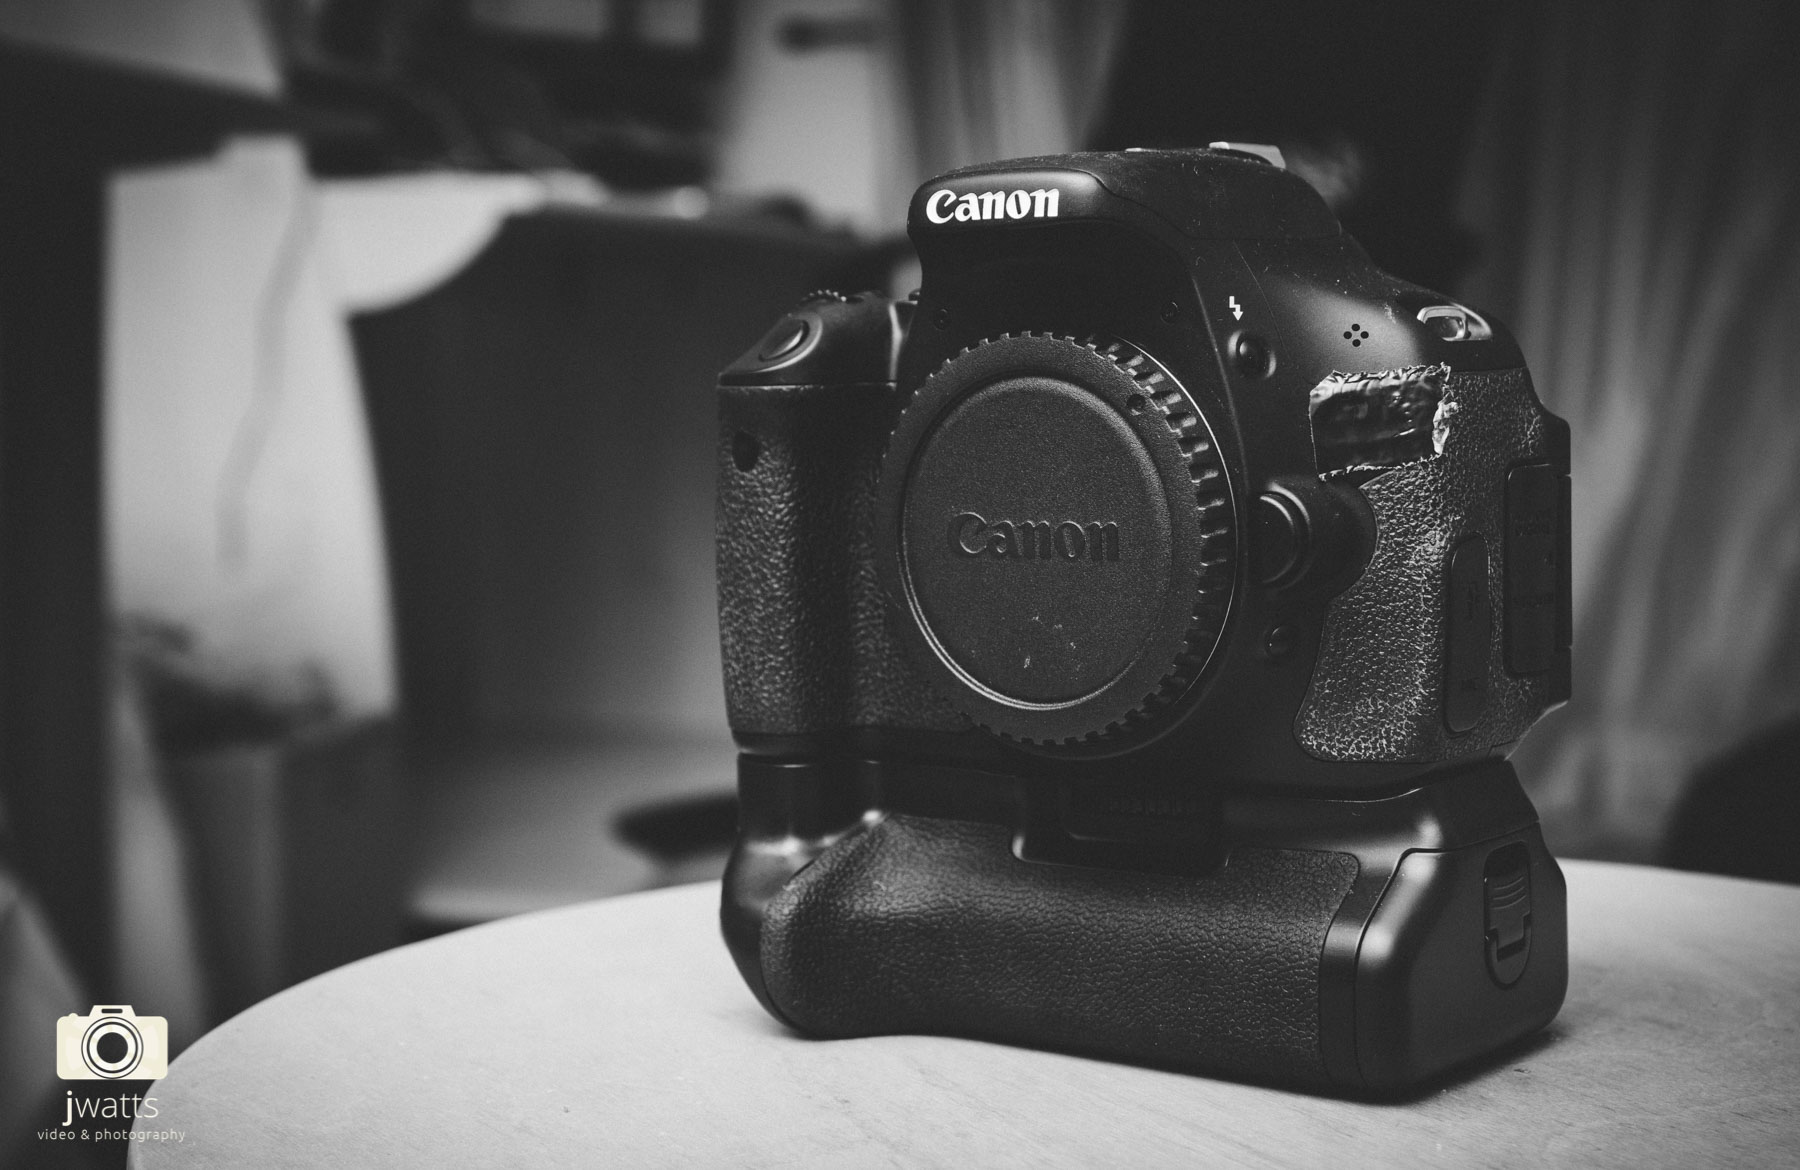 The End of my Canon 600D: Part One